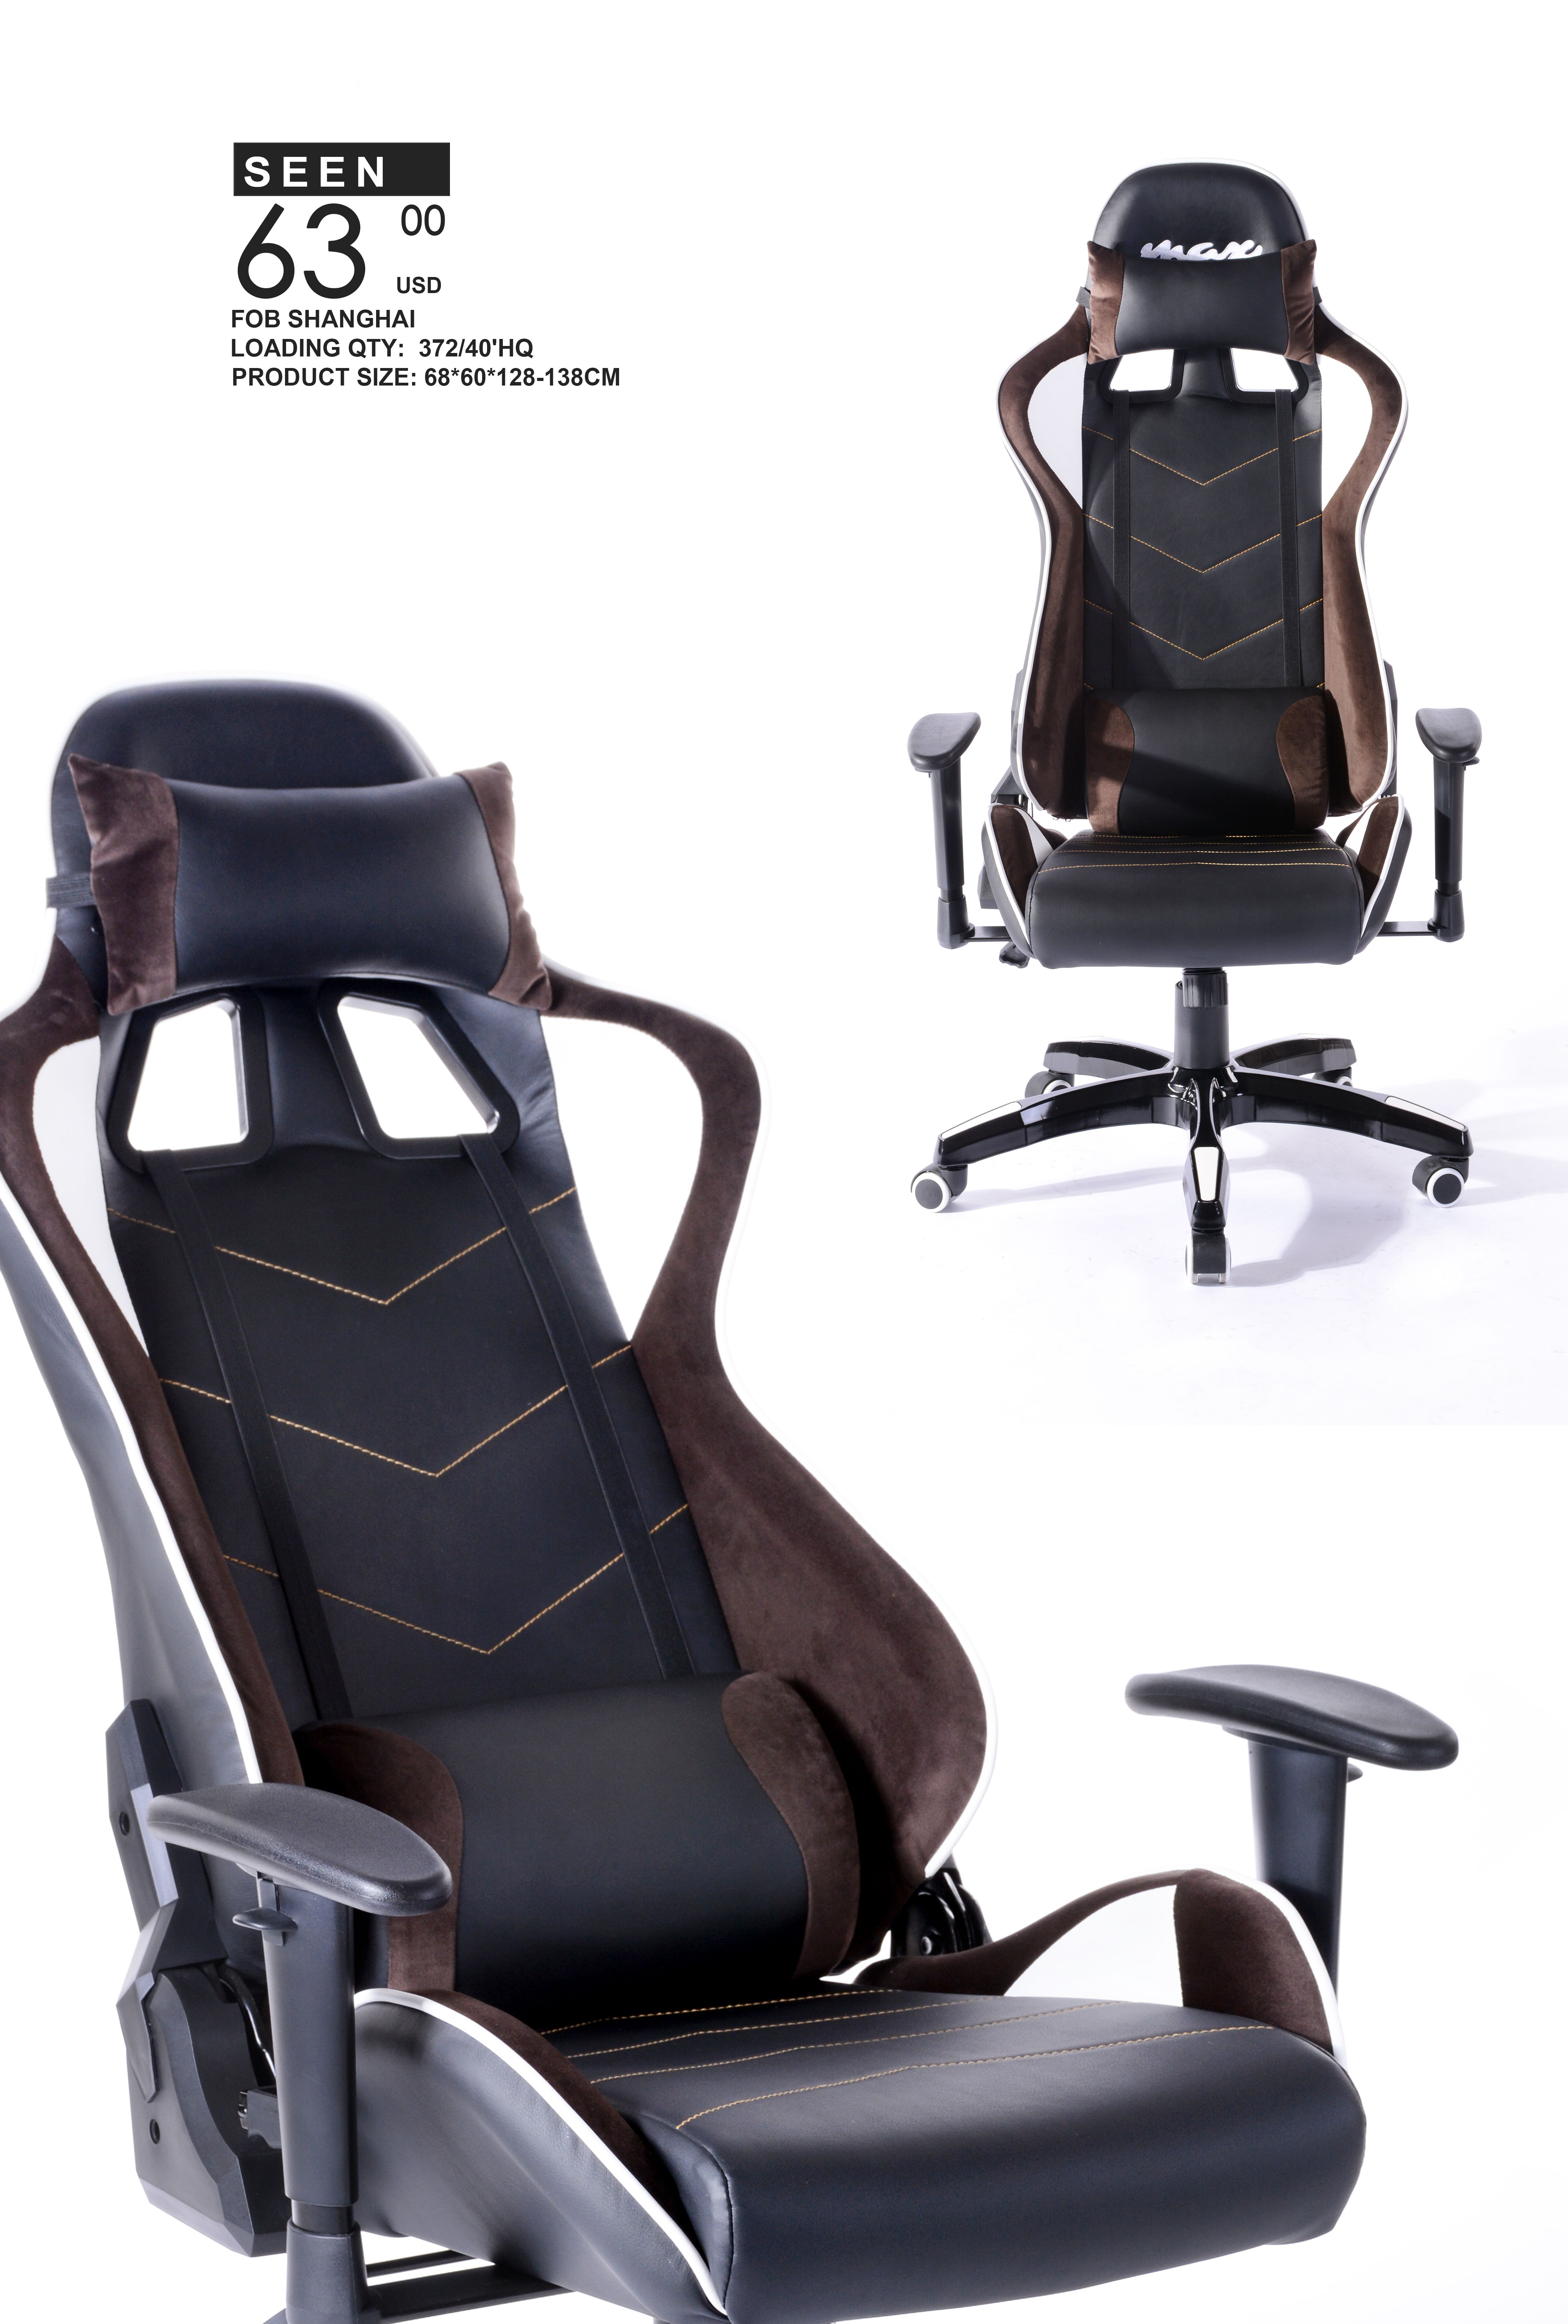 Good Cheap Gaming Chairs Spray Paint Vinyl Chair Walmart Reviews Best Buy Dxracer